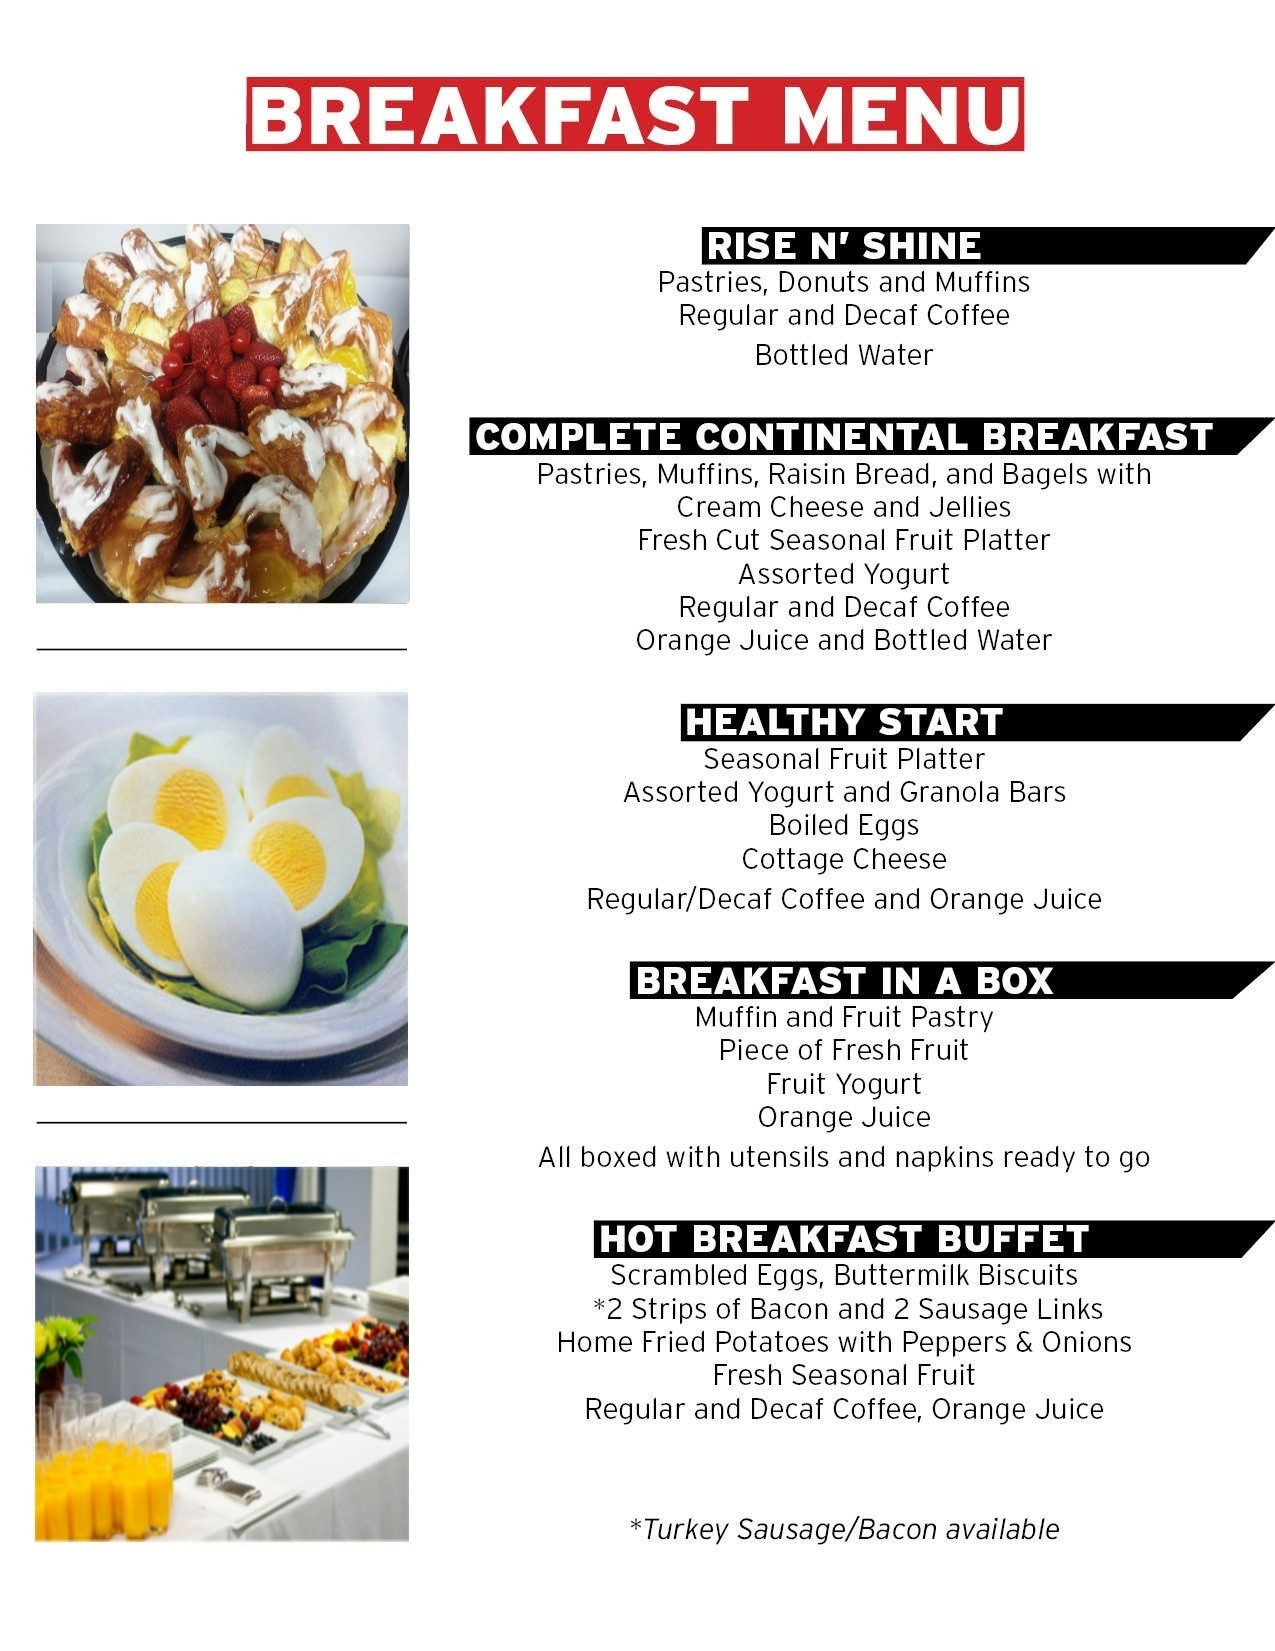 Denny'S Healthy Breakfast Menu  Healthy Breakfast Menu Ideas